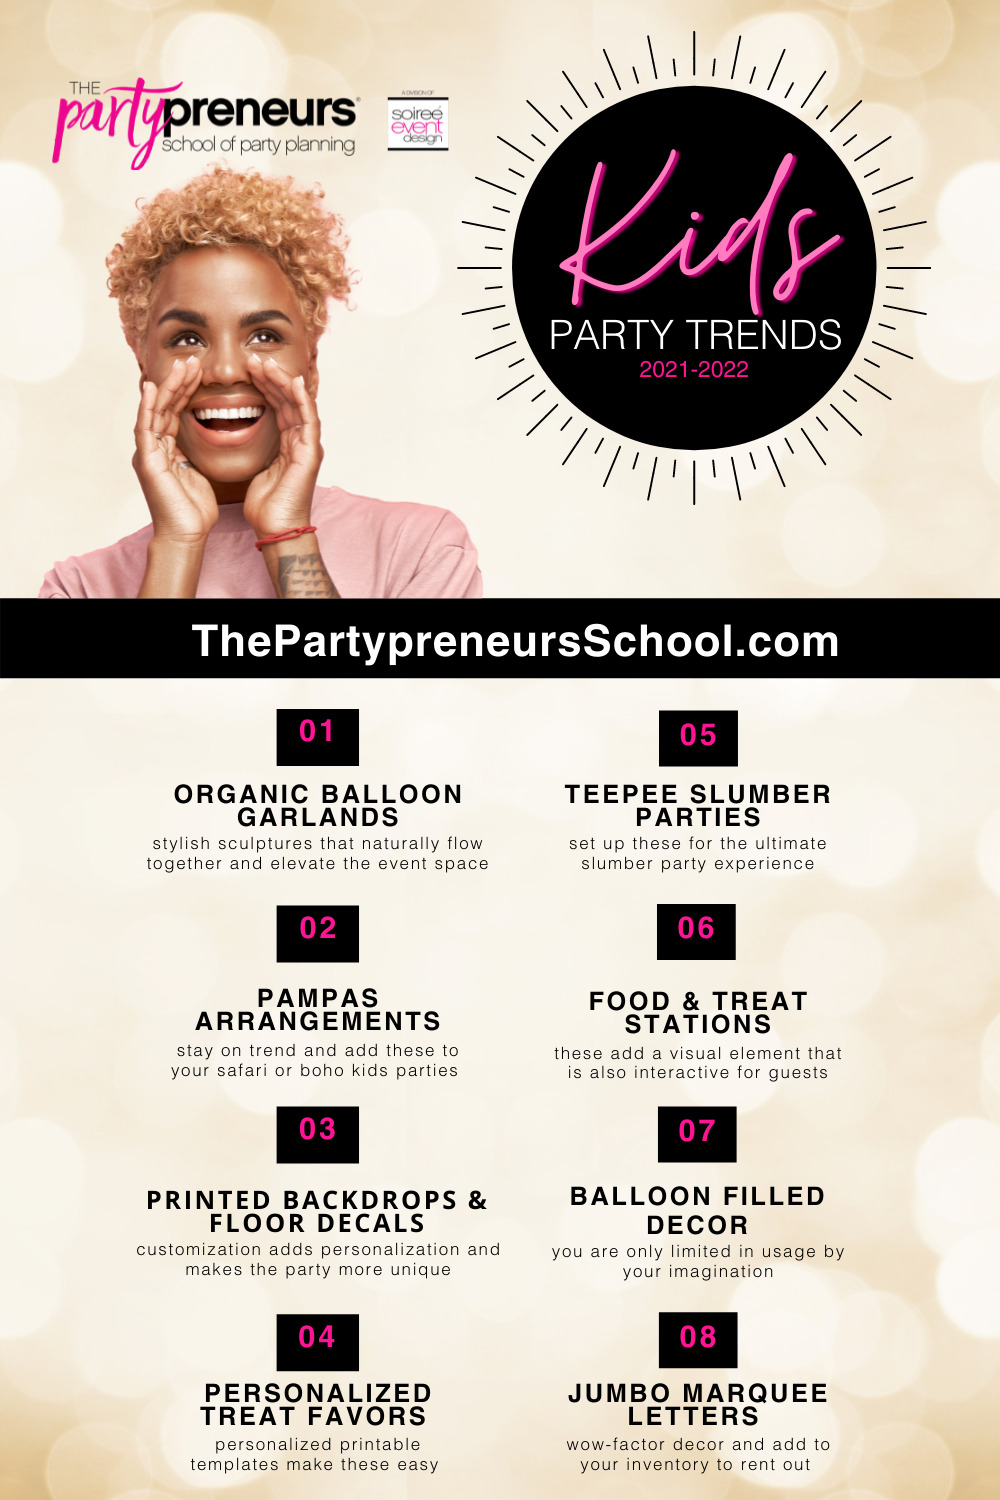 8 Kids Party Trends that will WOW your next client